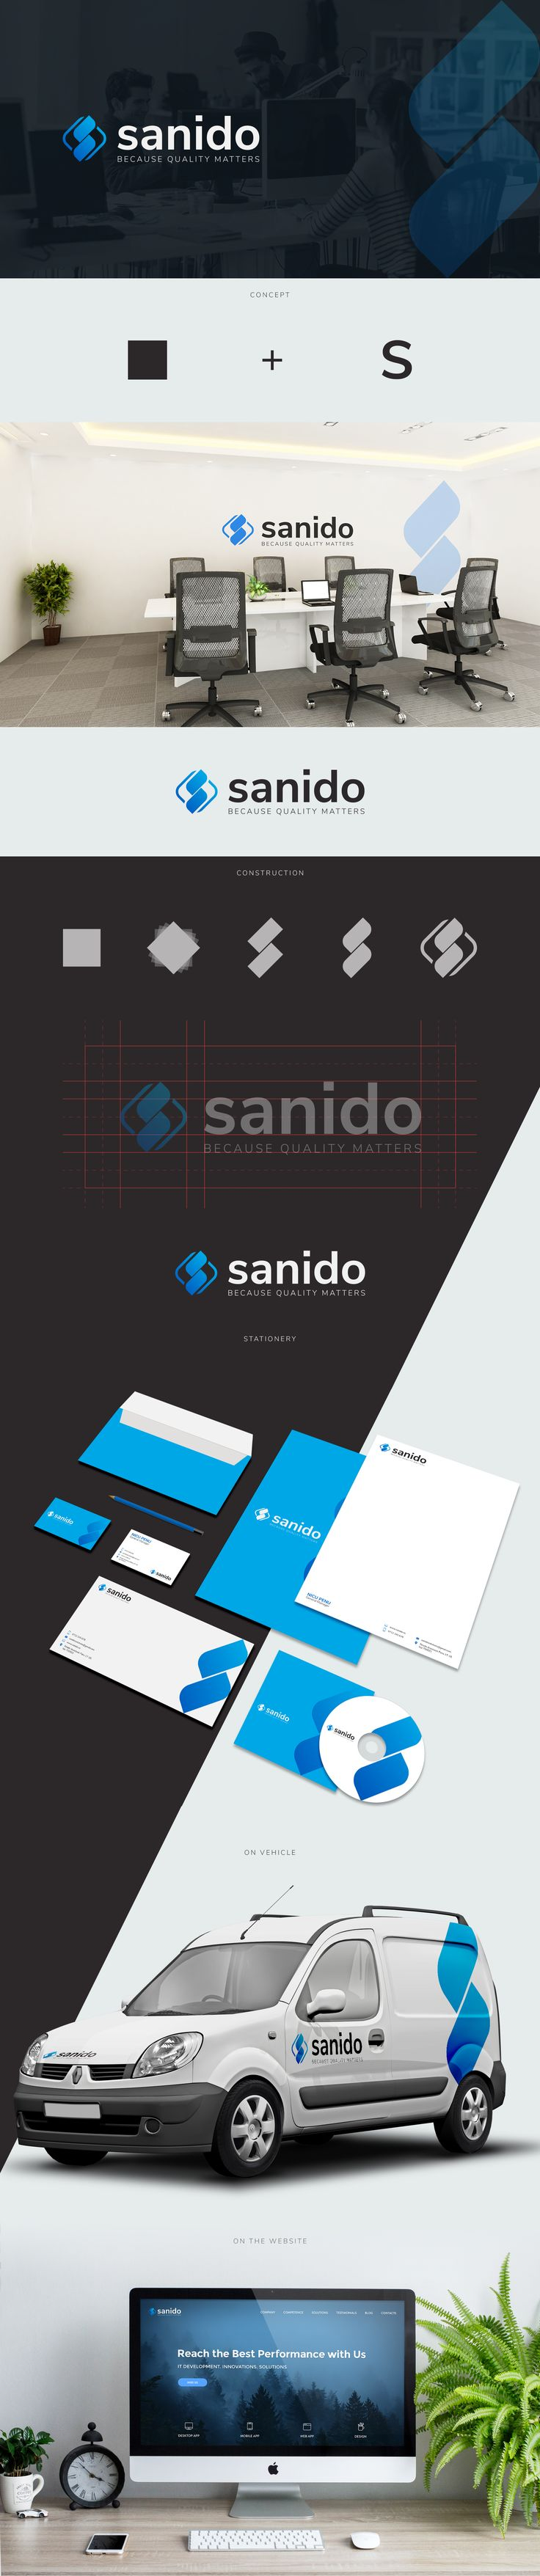 Branding proposal made for - Sanido